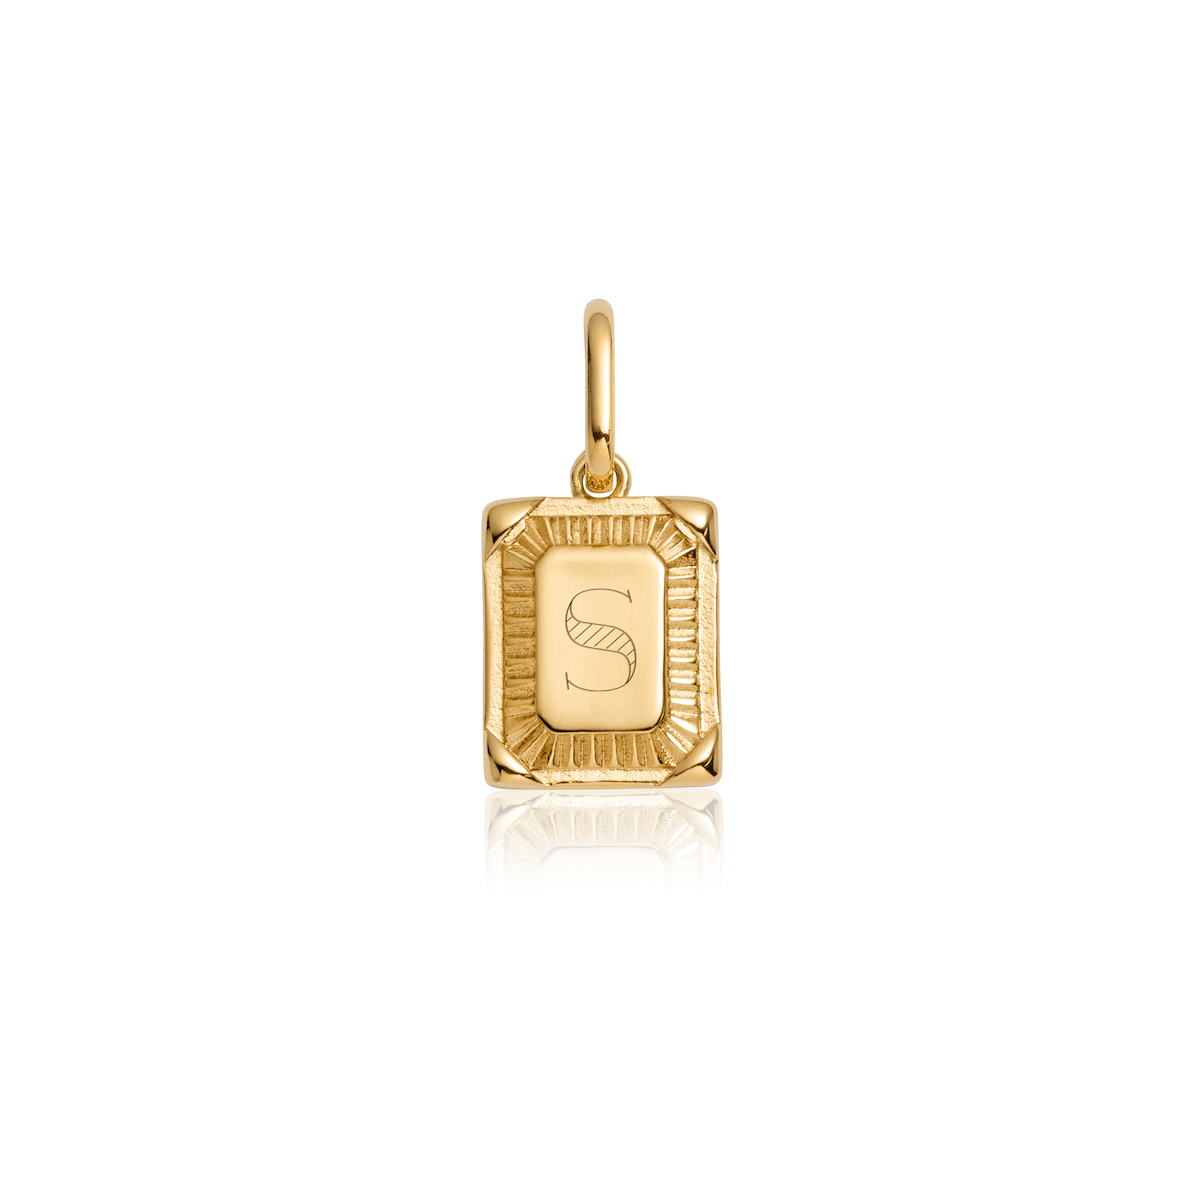 Selected Personalise Plate Pendant (Gold)-